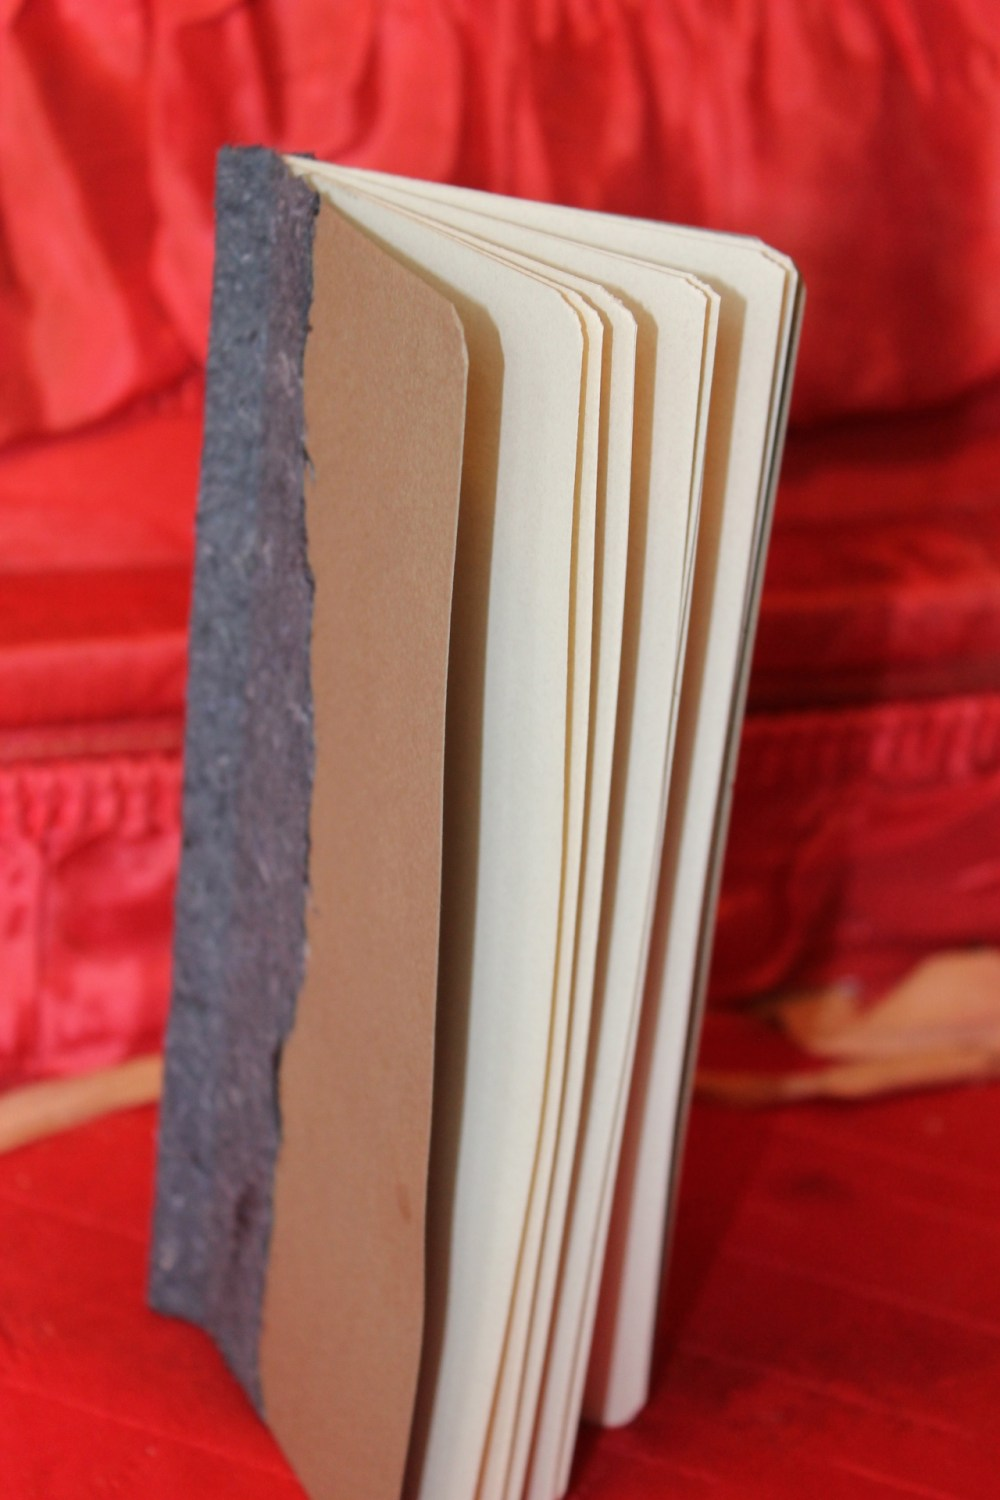 Handmade Day #12: The Little List Book (Handmade Blank Book)